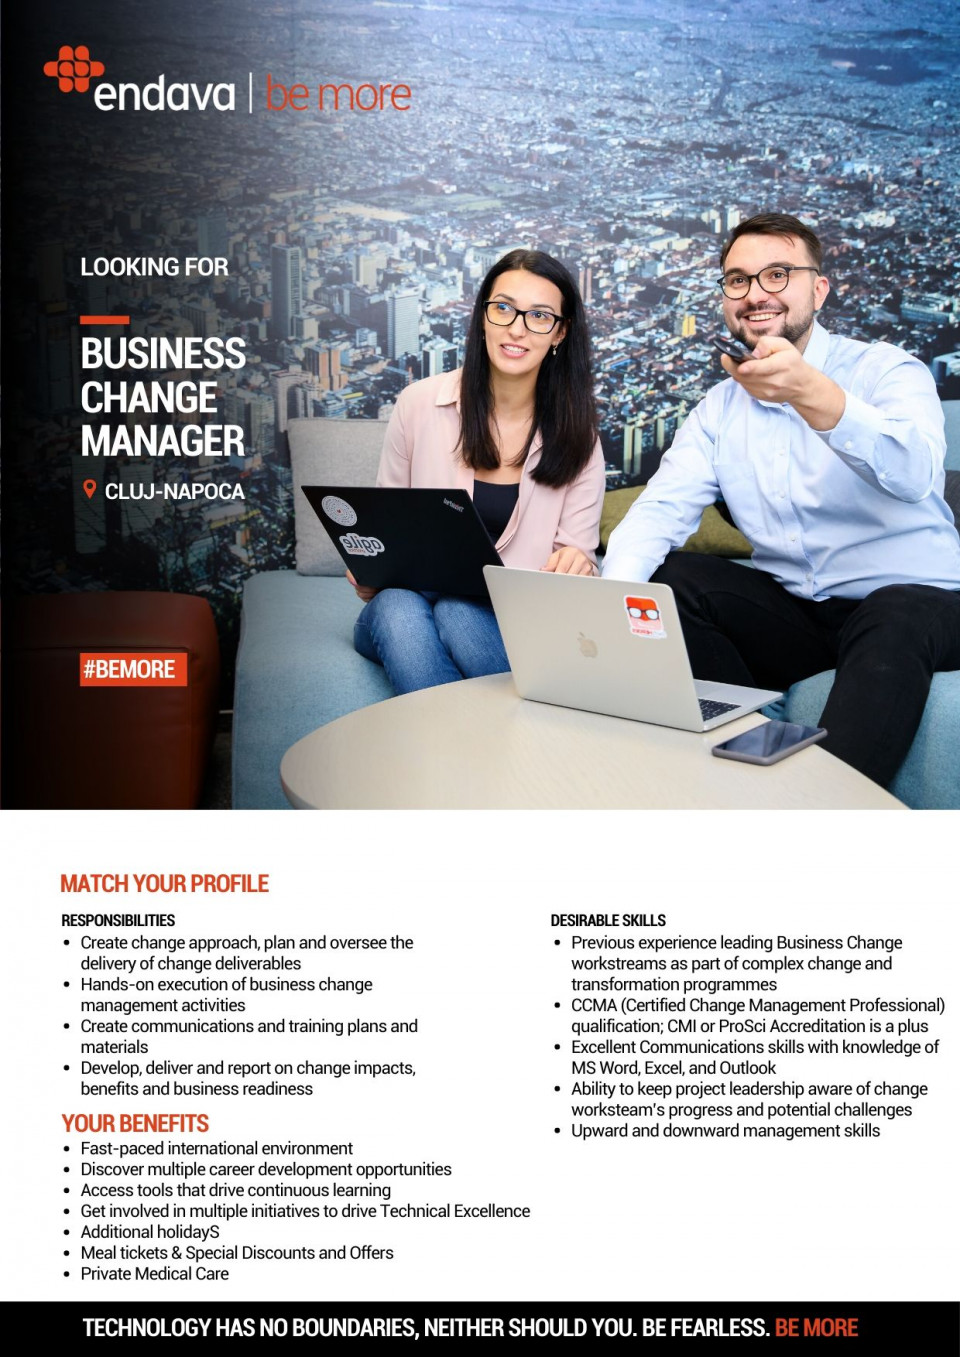 Previous experience leading Business Change workstreams as part of complex change and transformation programmes Experience of working across international boundaries is an advantage CCMA (Certified Change Management Professional) qualification; CMI or ProSci Accreditation is a plus Excellent Communications skills with knowledge of MS Word, Excel, and Outlook] Ability to keep project leadership aware of change workstream's progress and potential challenges Ability to organize own workload and workload of others to ensure successful delivery of change plan Upward and downward management skills  Create change approach, plan and oversee the delivery of change deliverables (eg. business change proposals, benefits identification, impact assessment, approach, group identification and mapping, communications approach, workshops)  Hands-on execution of business change management activities Create communications and training plans and materials Ensure stakeholders and end-users feel informed, involved and listened to Design the change process for end-users in a way which minimizes business disruption whilst balancing project objectives and requirements Develop, deliver and report on change impacts, benefits and business readiness Manage the relationship with key vendors and internal partners including branding specialists, business representatives, and internal communications team  Able to identify potential risks and issues and mitigate and plan accordingly Create change management cost/effort forecast and deliver change plan in line with budgetary restrictions and agreed funding Endava is a leading European IT services organisation with over 5,700 staff. Headquartered in London, Endava has offices in the UK (London), Germany (Frankfurt), Netherlands (Amsterdam), Denmark (Copenhagen), Romania (Bucharest, Cluj and Iasi), Moldova (Chisinau), Serbia (Belgrade), Bulgaria (Sofia), Macedonia (Skopje), USA (New York, Atlanta, New Jersey, and Seattle), Colombia (Bogota and Medellín)